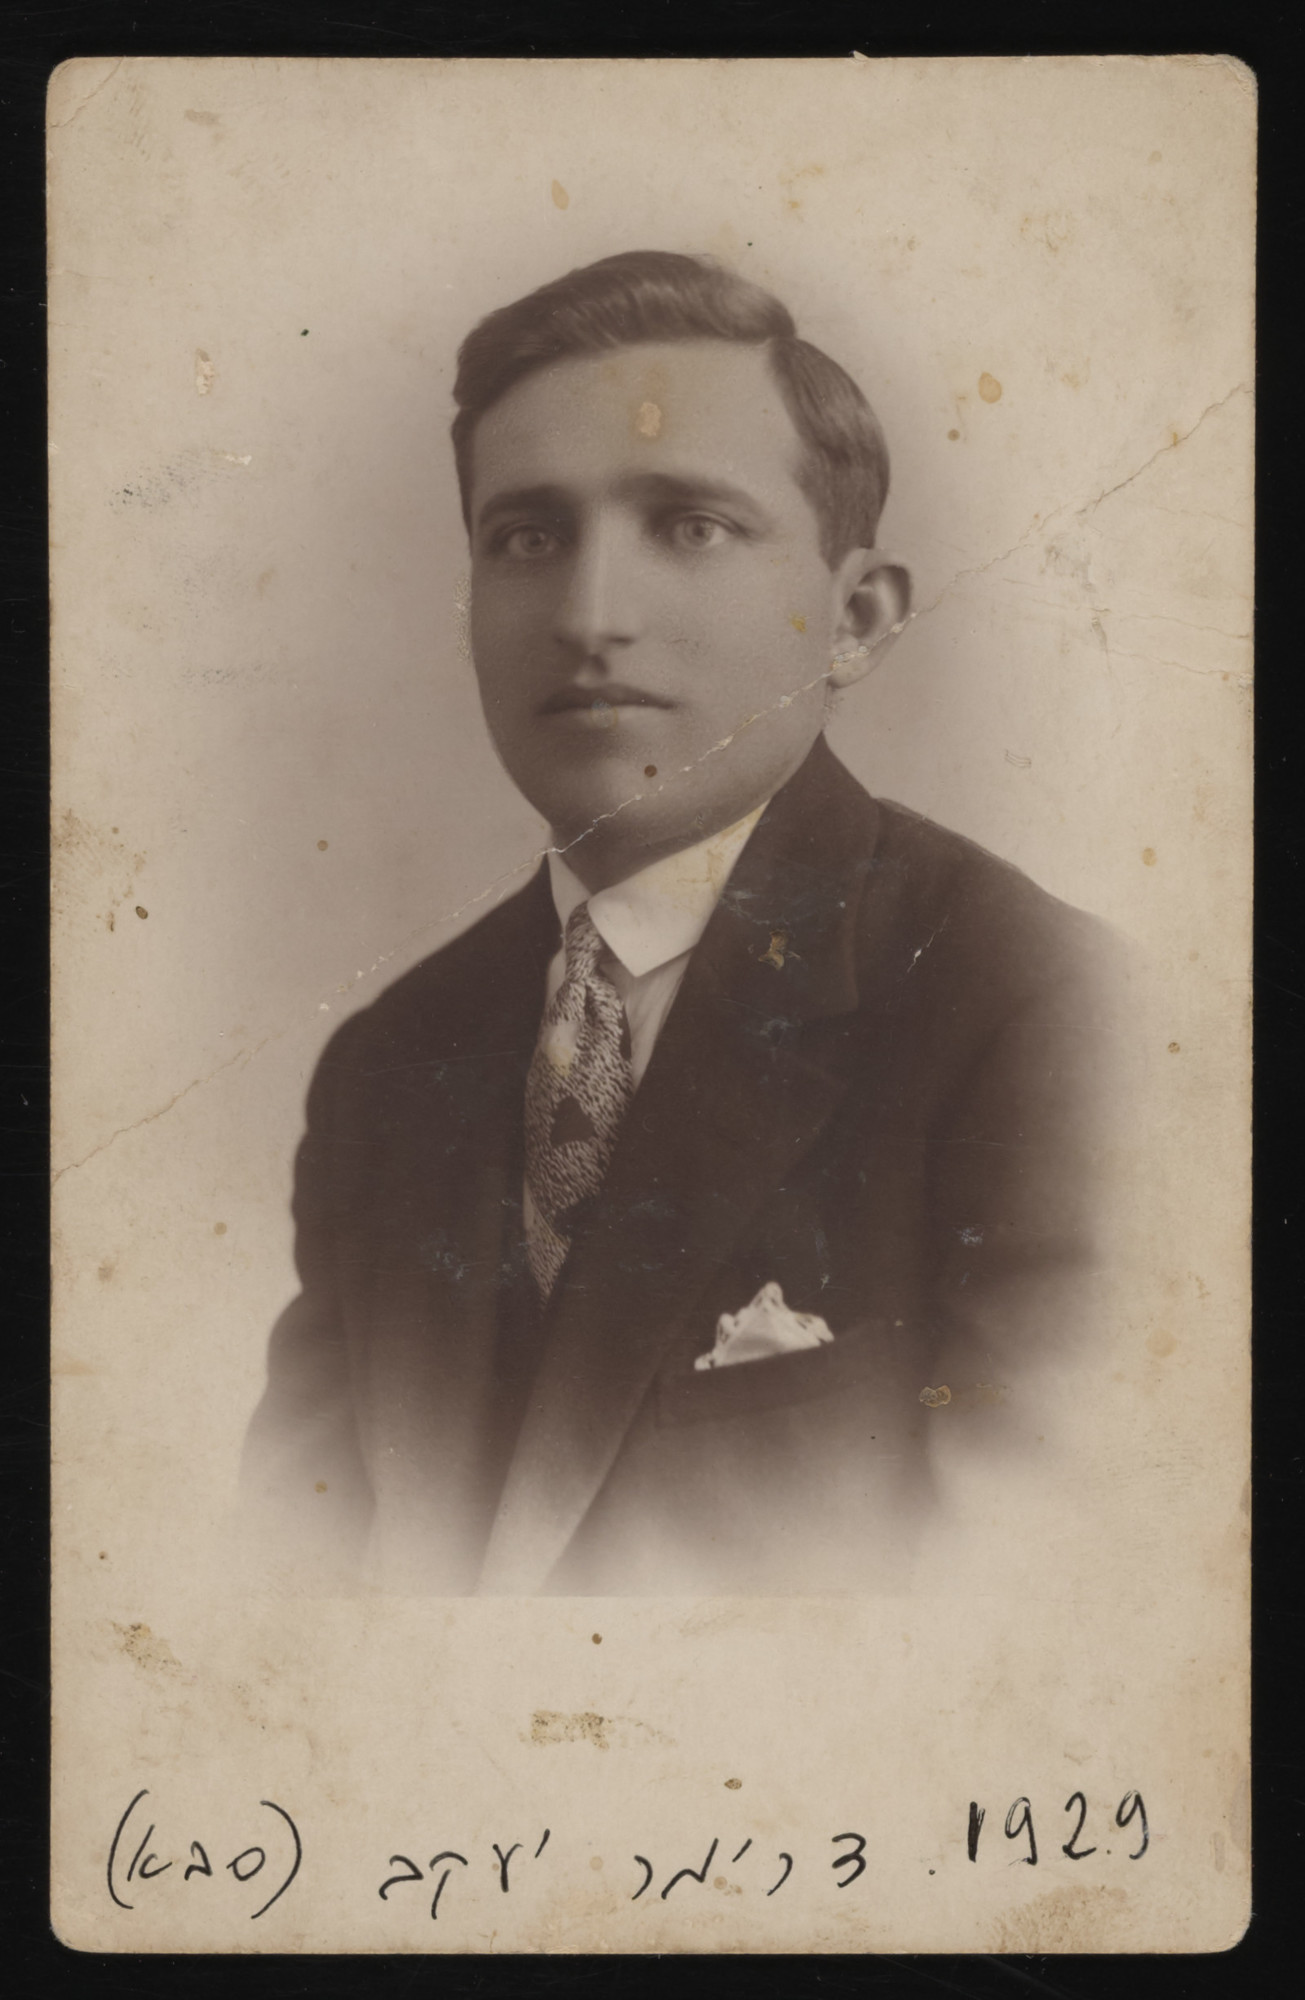 Studio portrait of Jakub Drimer.  He gave this photograph to his fiancee Laura prior to their marriage in 1933.